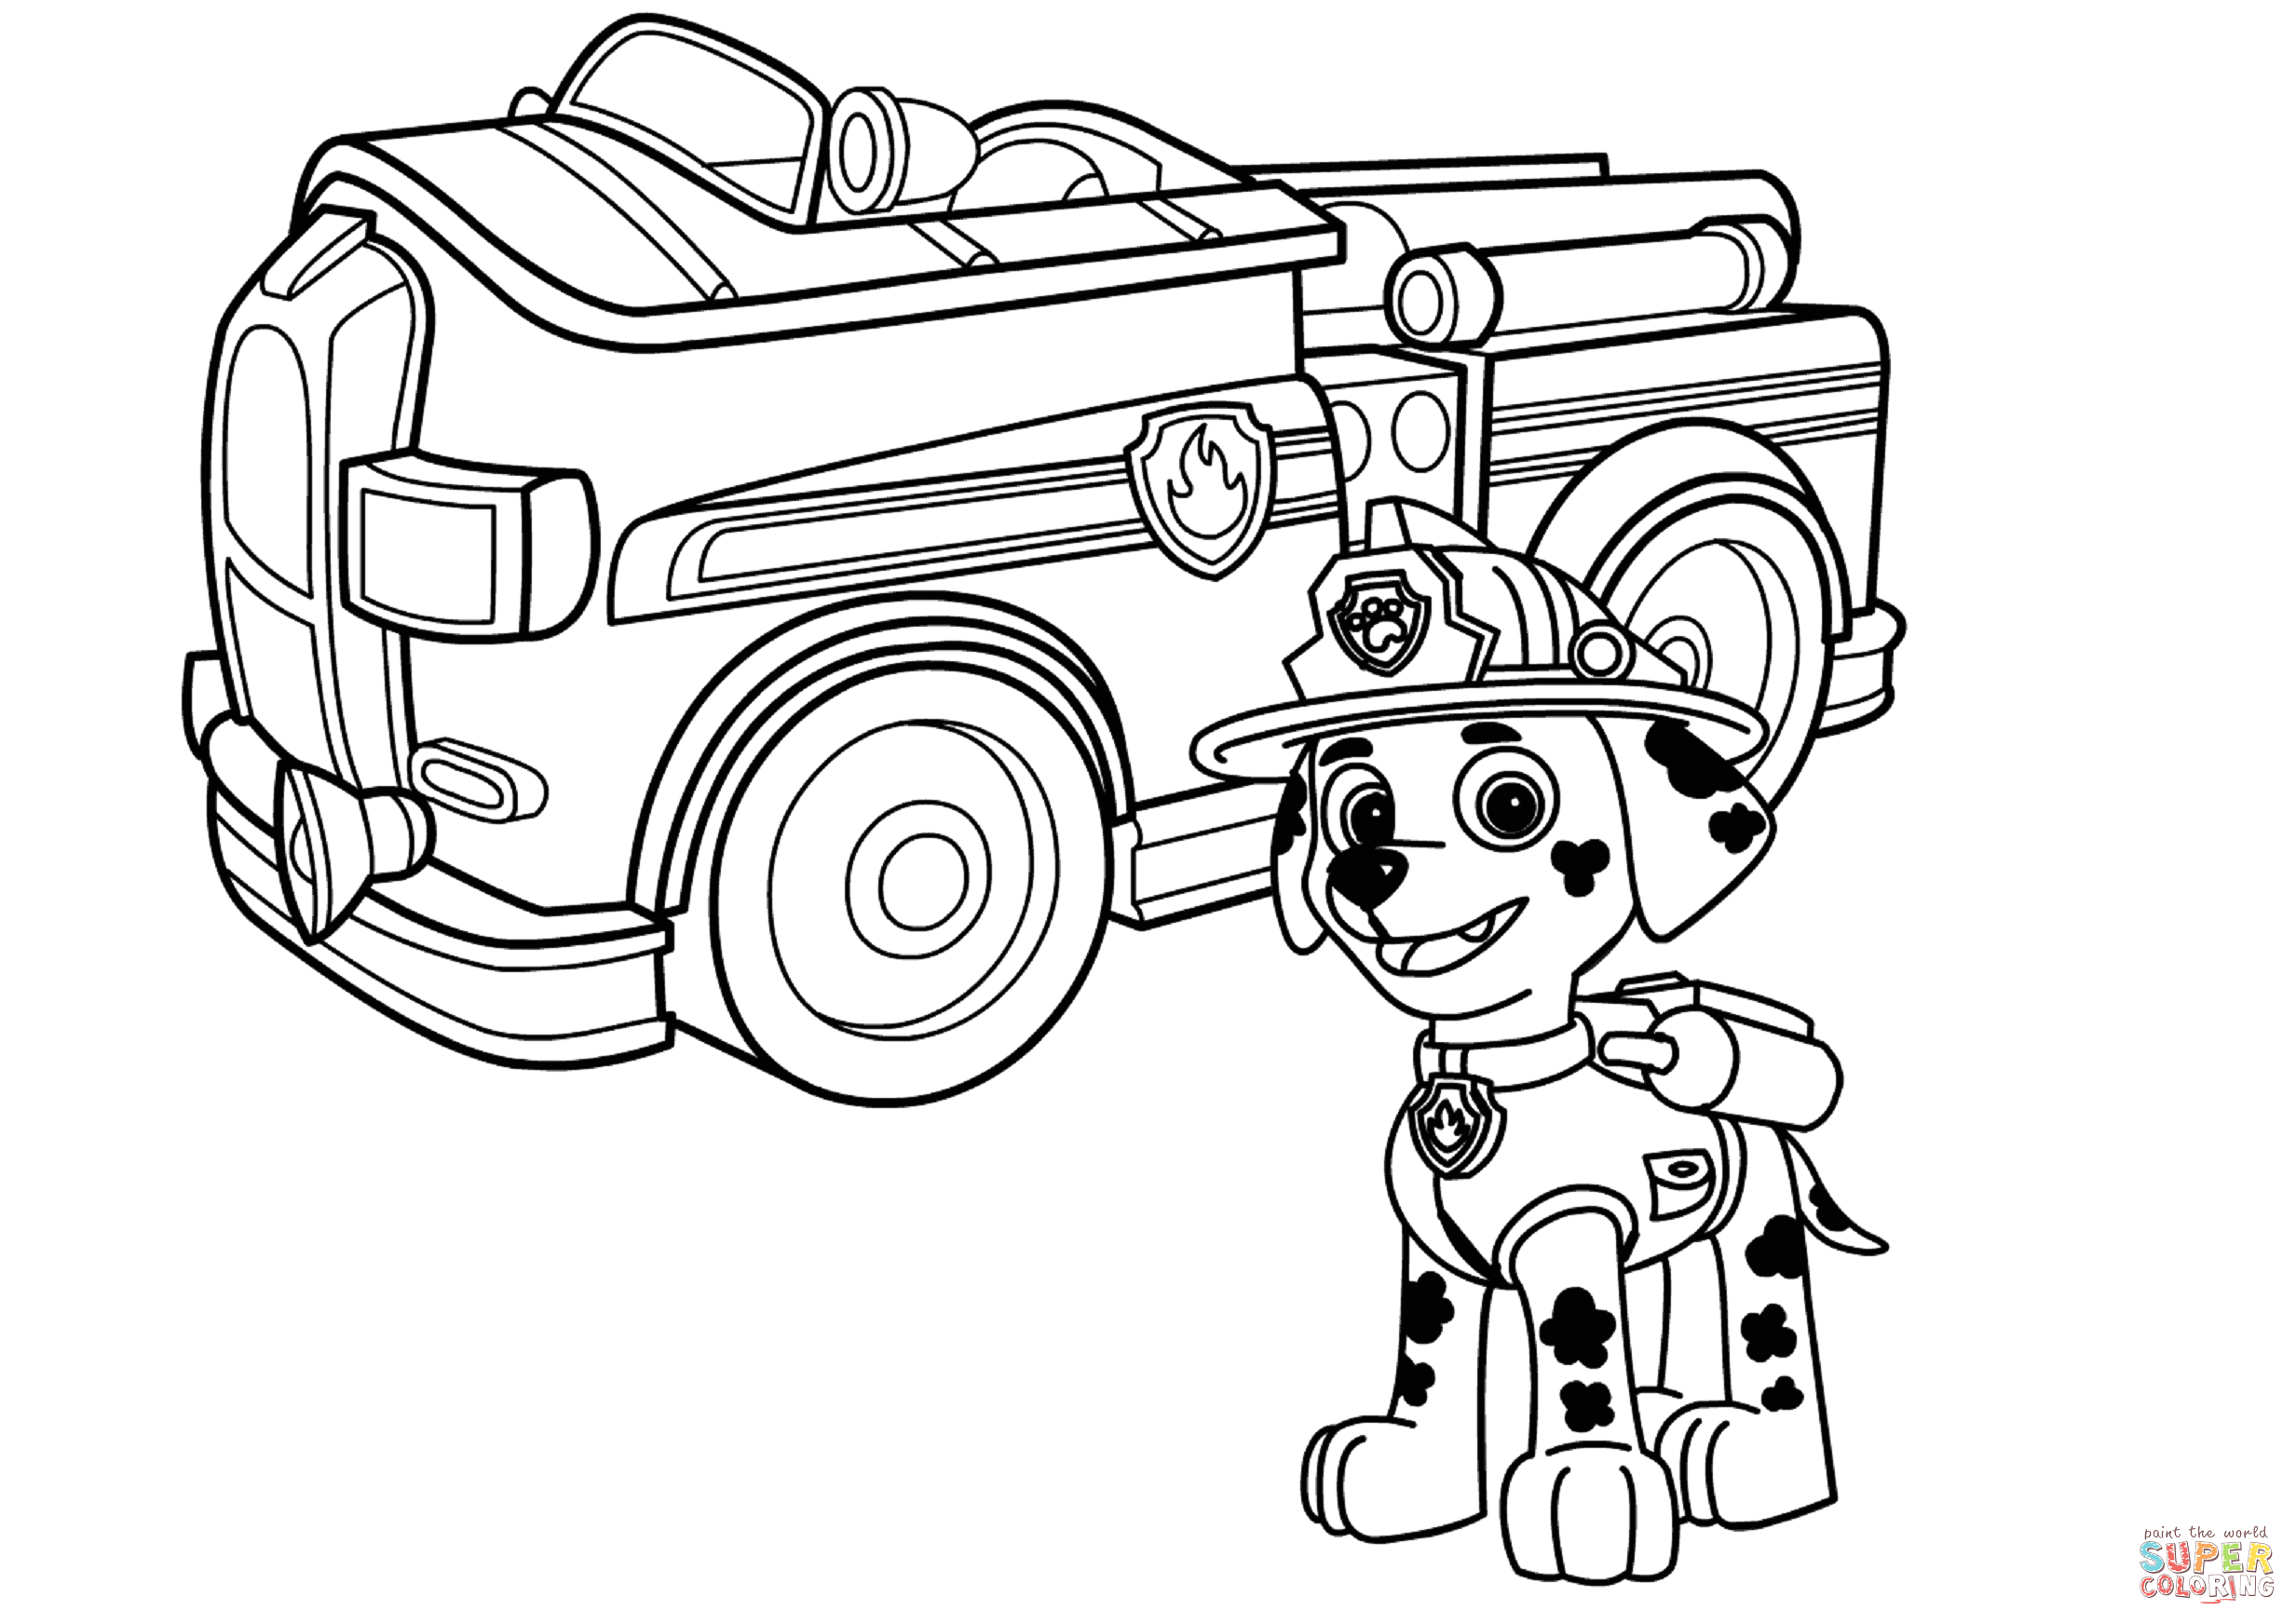 Paw Patrol Marshall Fire Truck Coloring Page Paw Patrol Marshall with Fire Truck Coloring Page